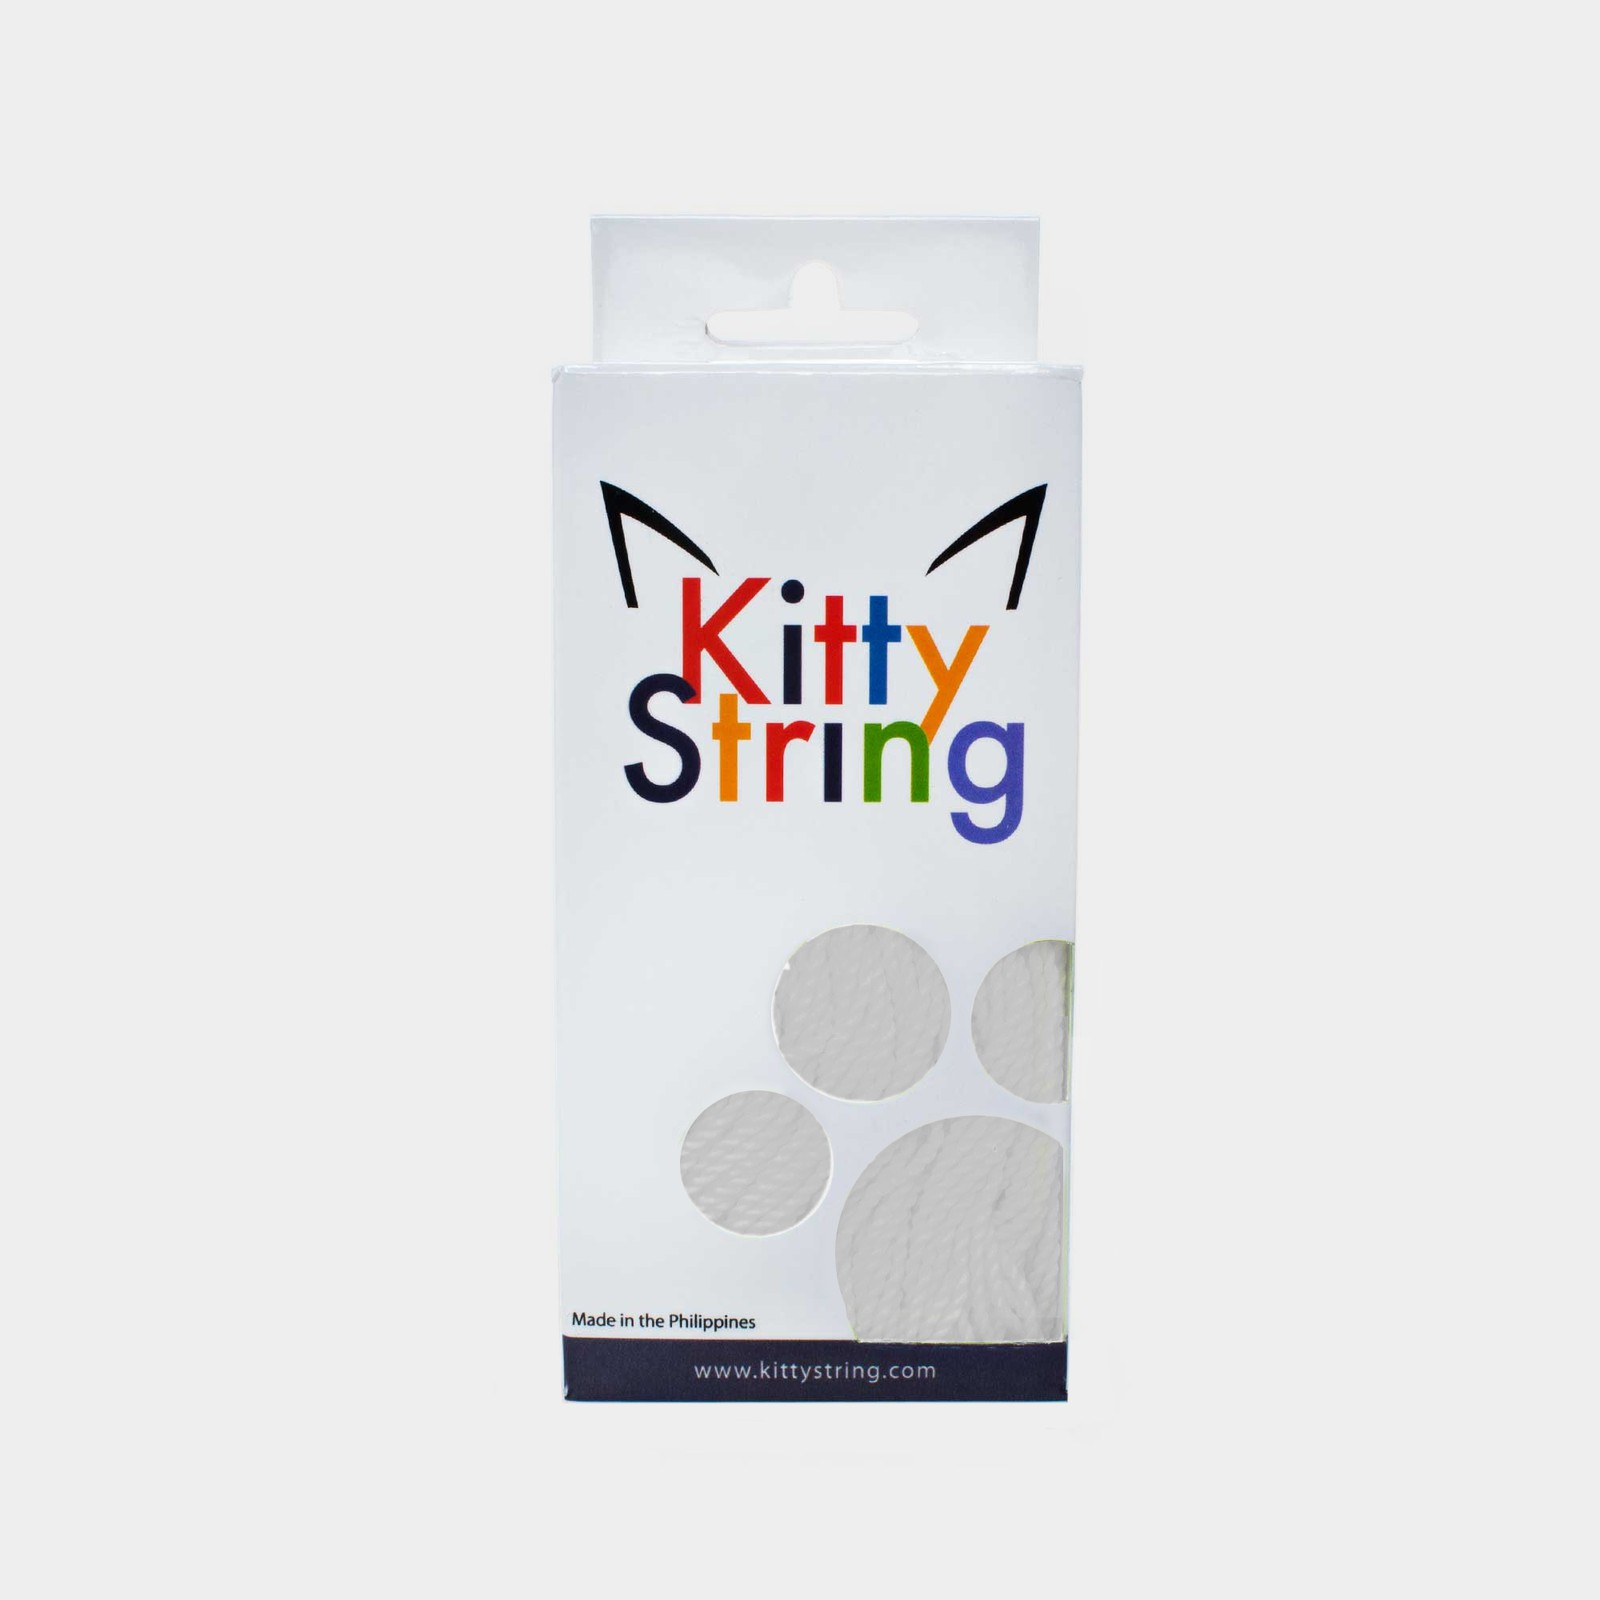 White Kitty String Tall Fat (50 pack) yo-yo strings by Kitty String